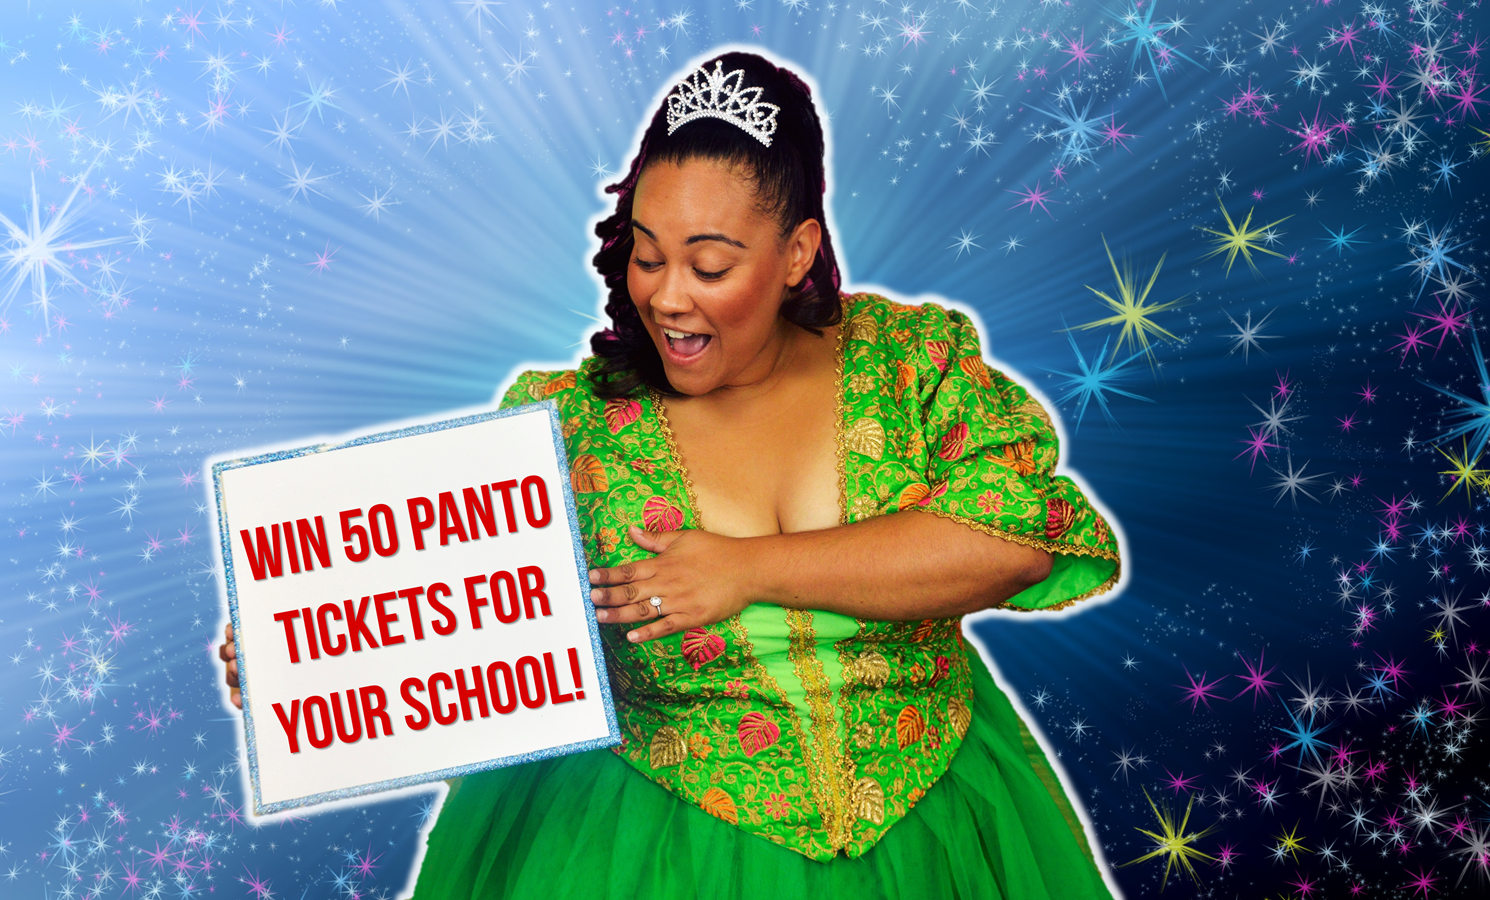 Win 50 FREE panto tickets for your school